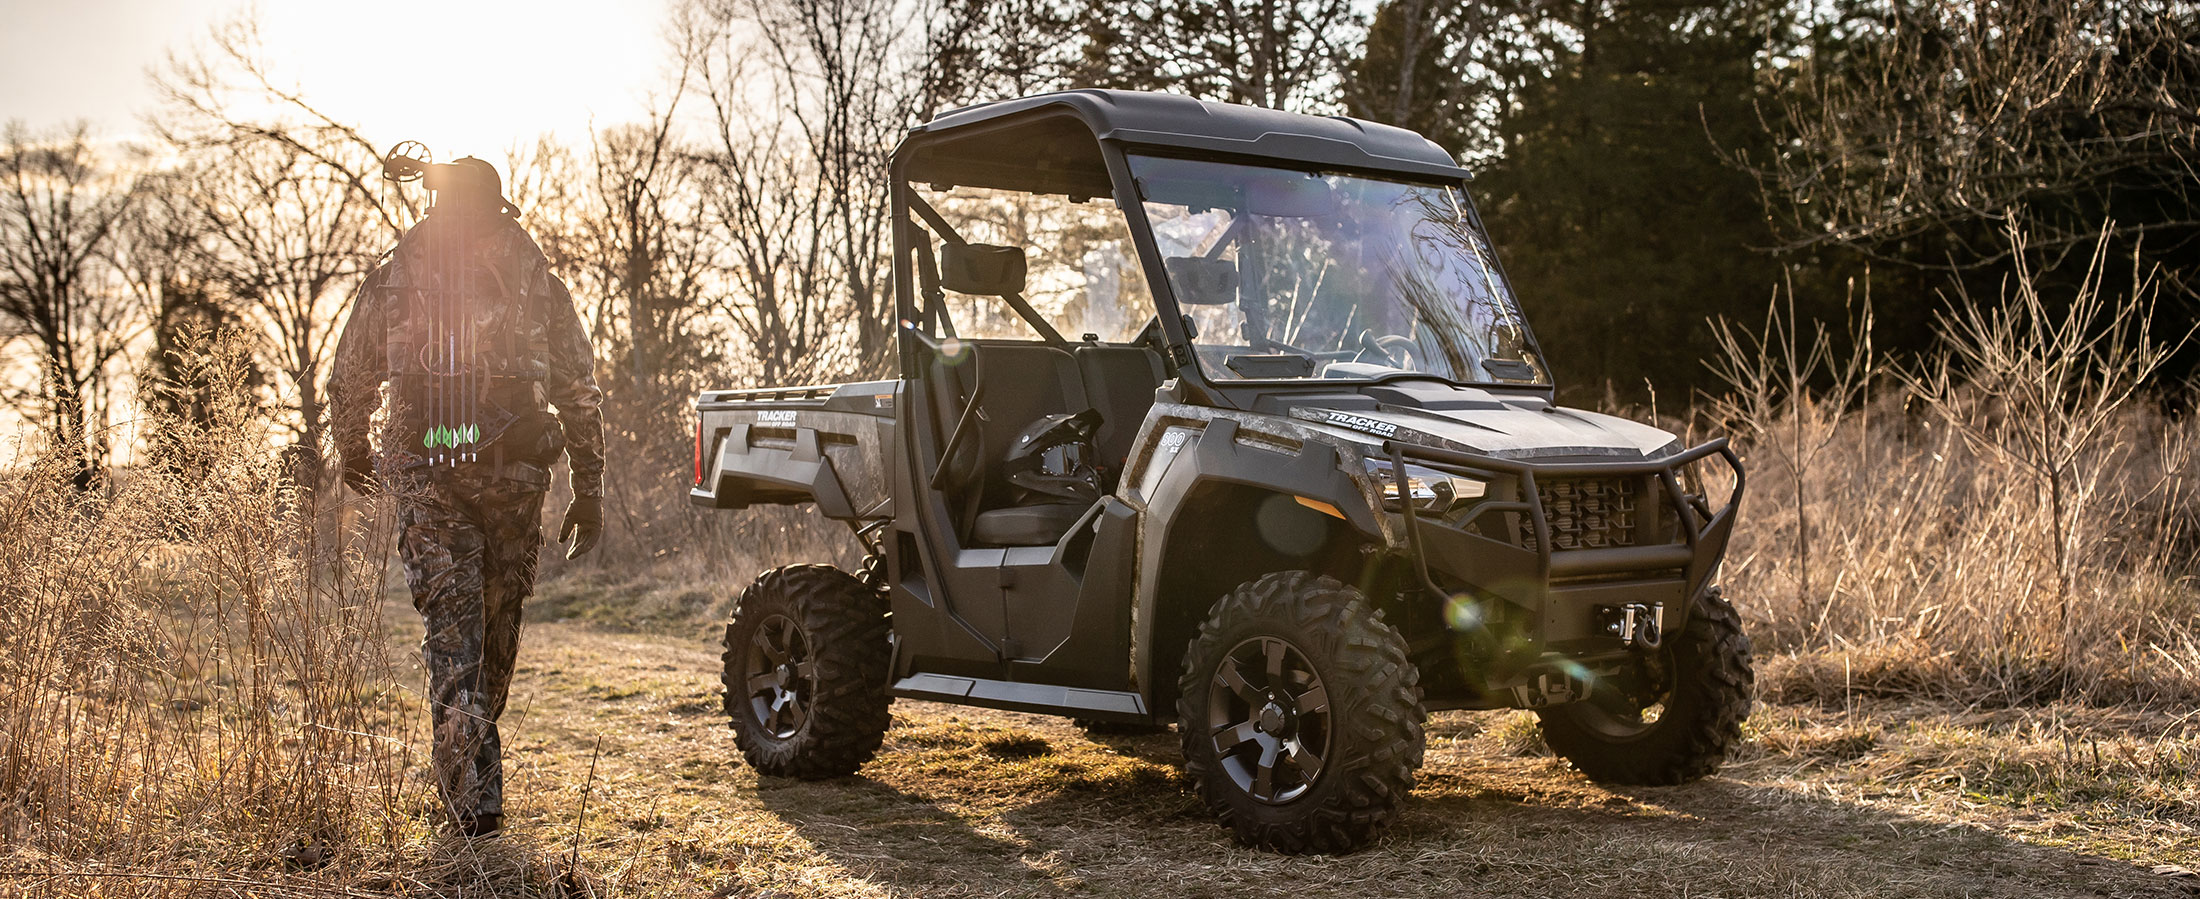 Tracker 800SX Exclusive Auto Marine Tracker Off Road Side-by